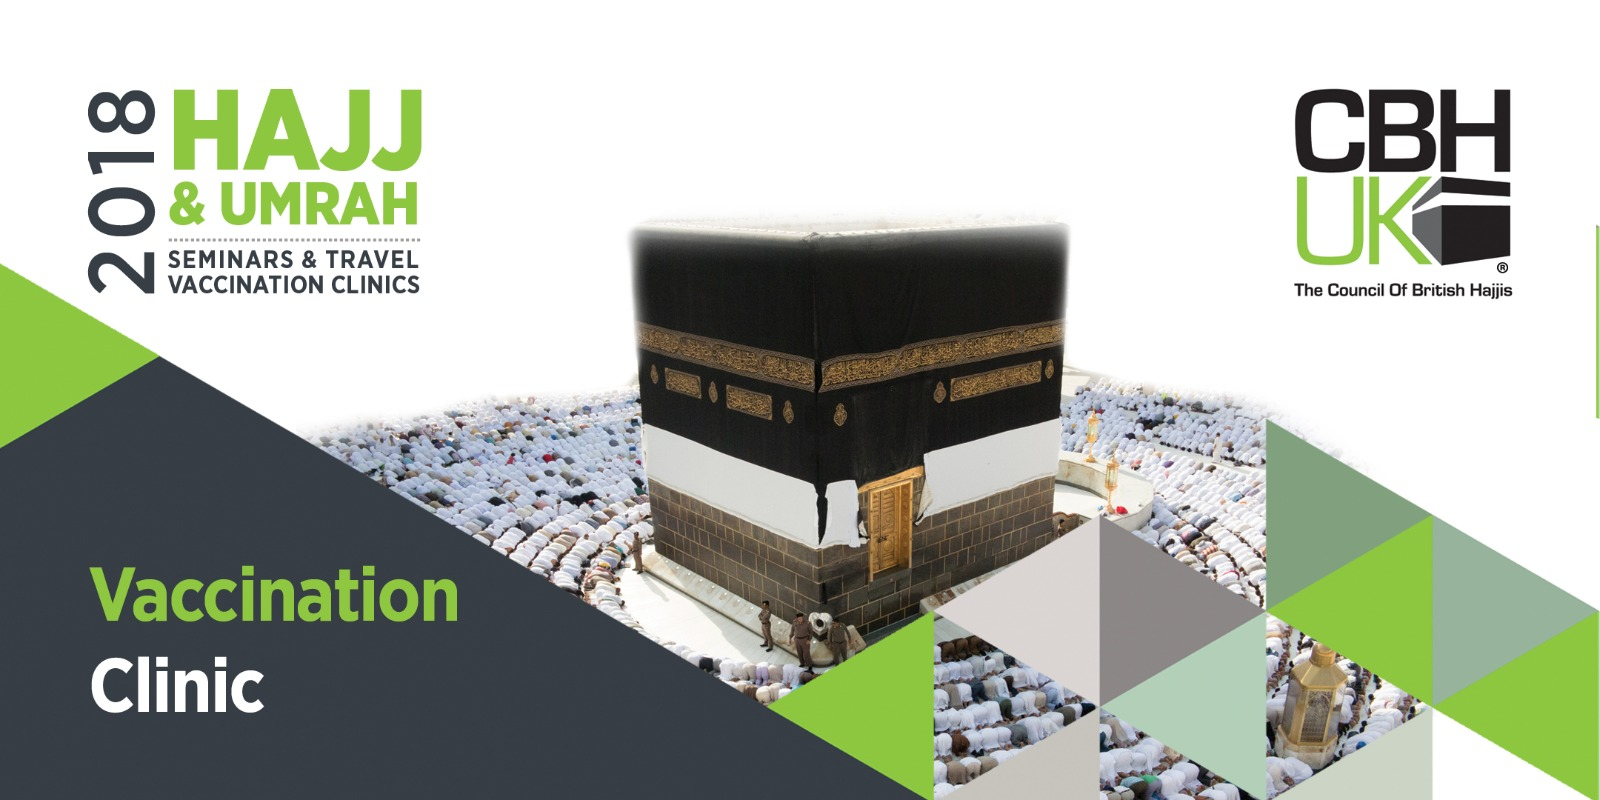 Umrah Banner: Hajj & Umrah Vaccination Clinic 2018 - London